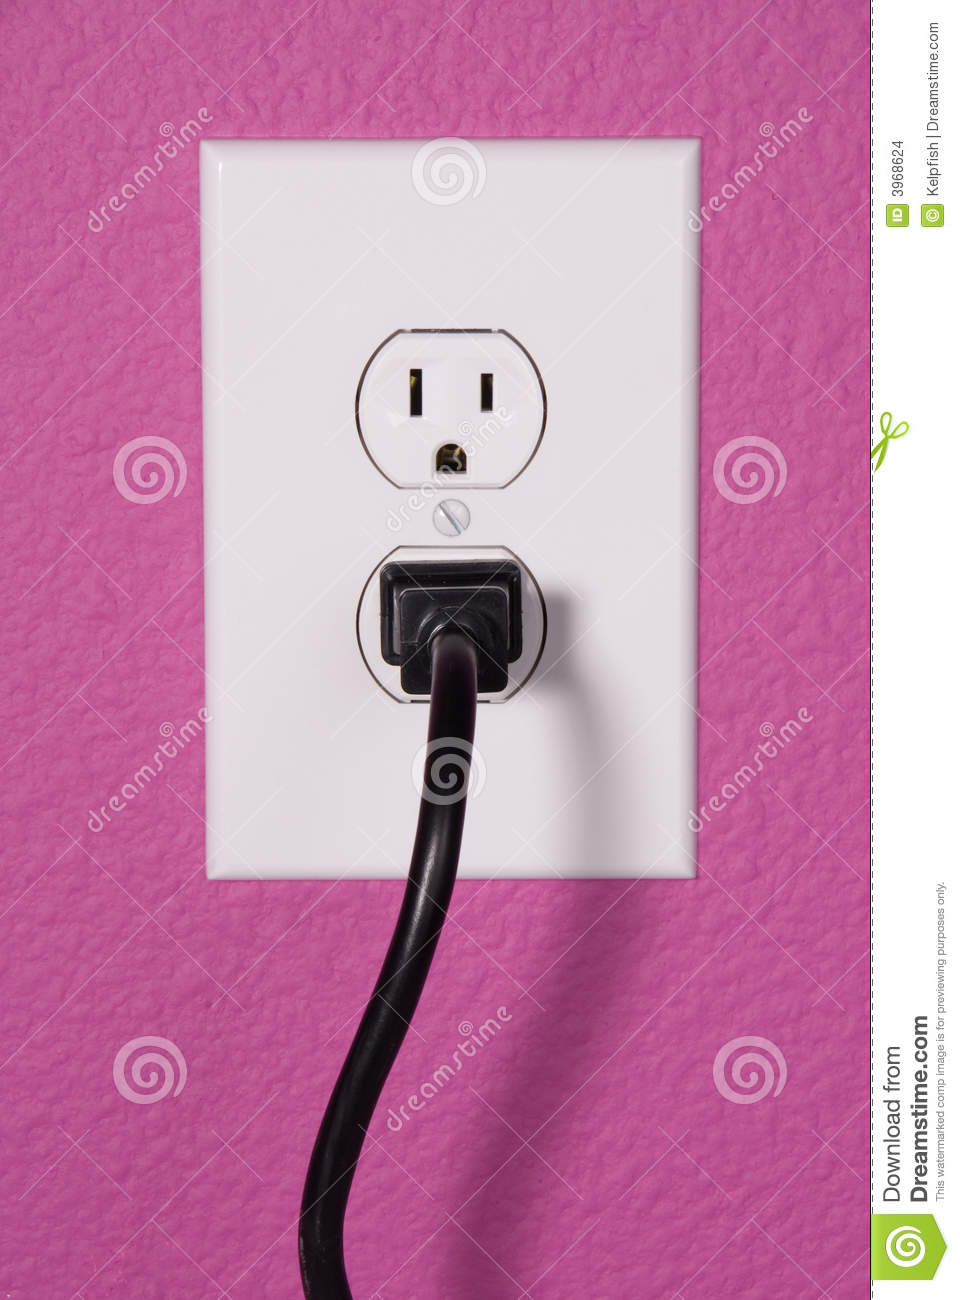 hight resolution of a clean image of a 110 volt wall power outlet against a freshly painted wall perfect image for any abstract energy promotion use or to make inferences for